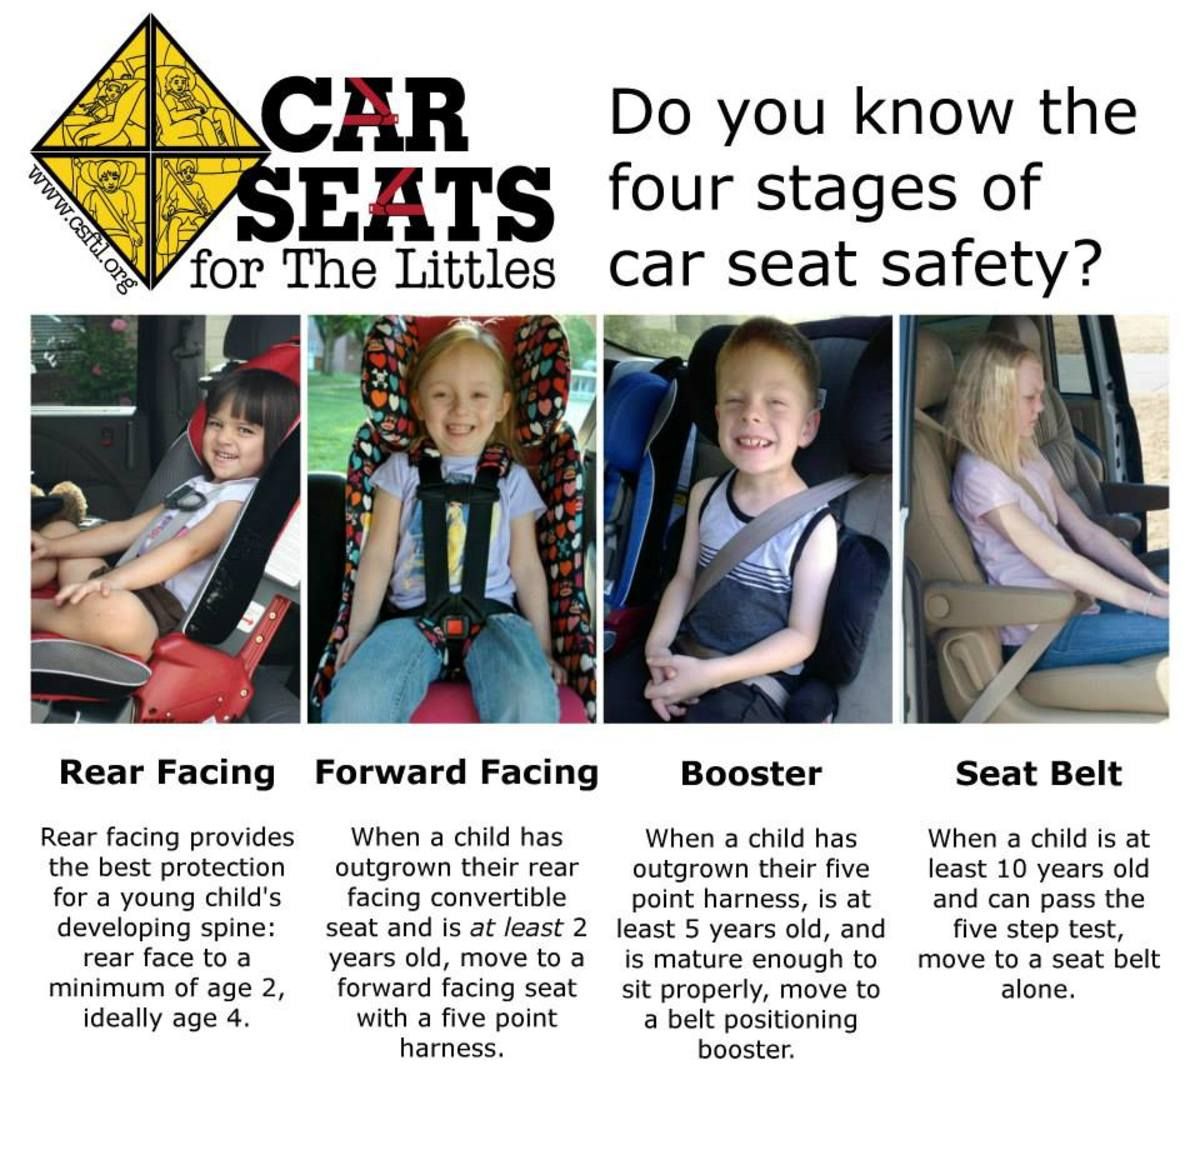 The Basics of Car Seat Safety